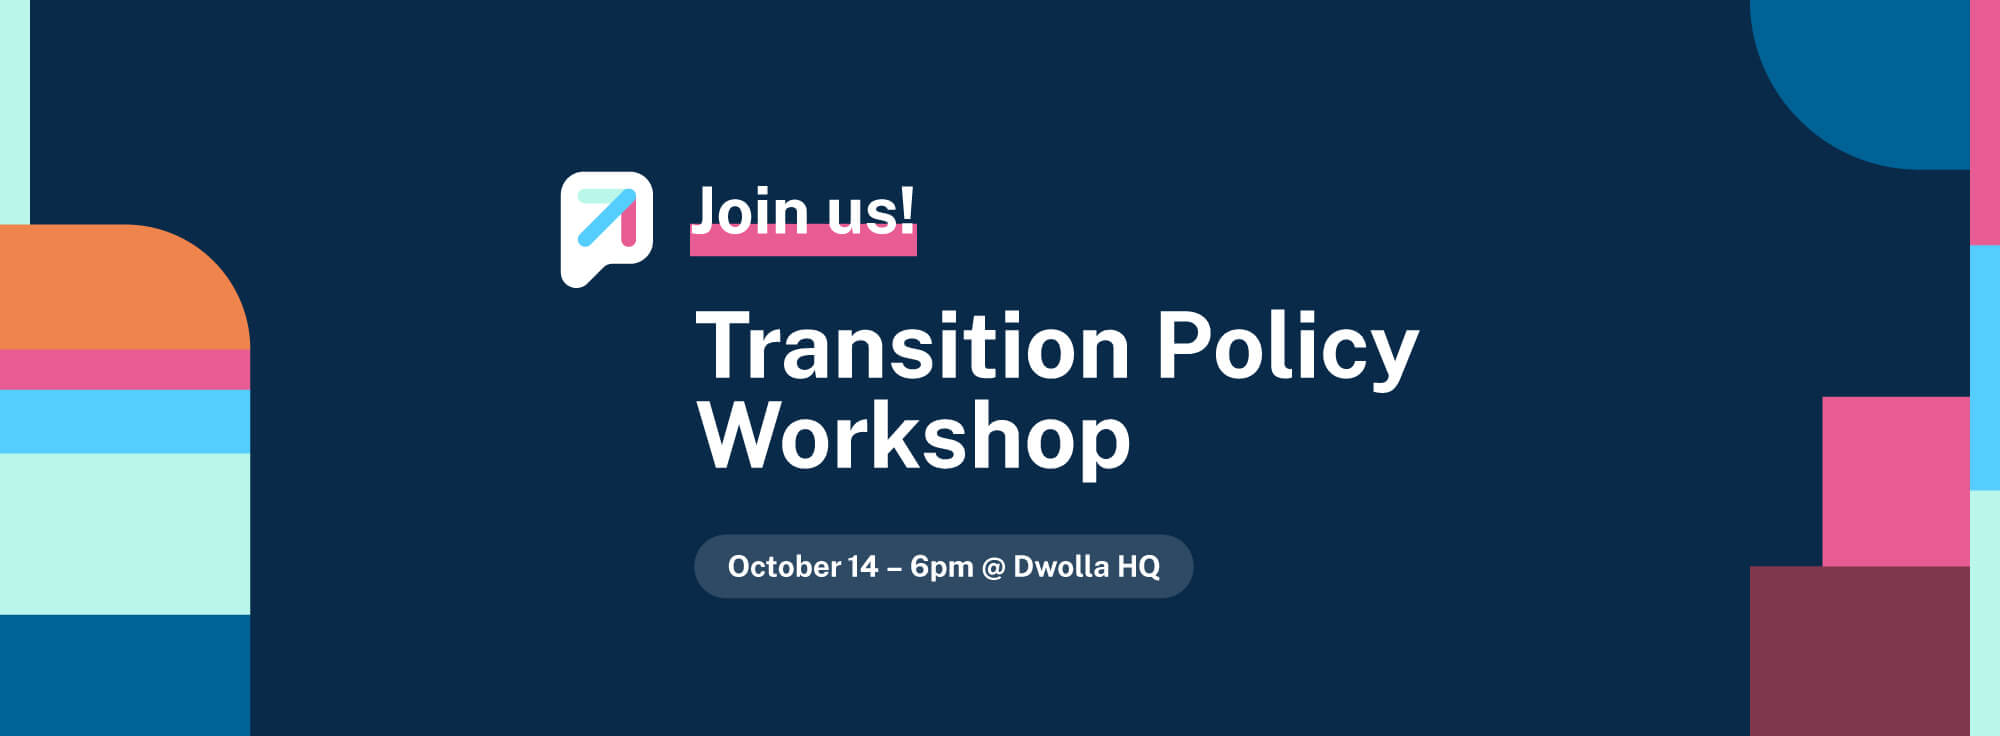 transition policy workshop